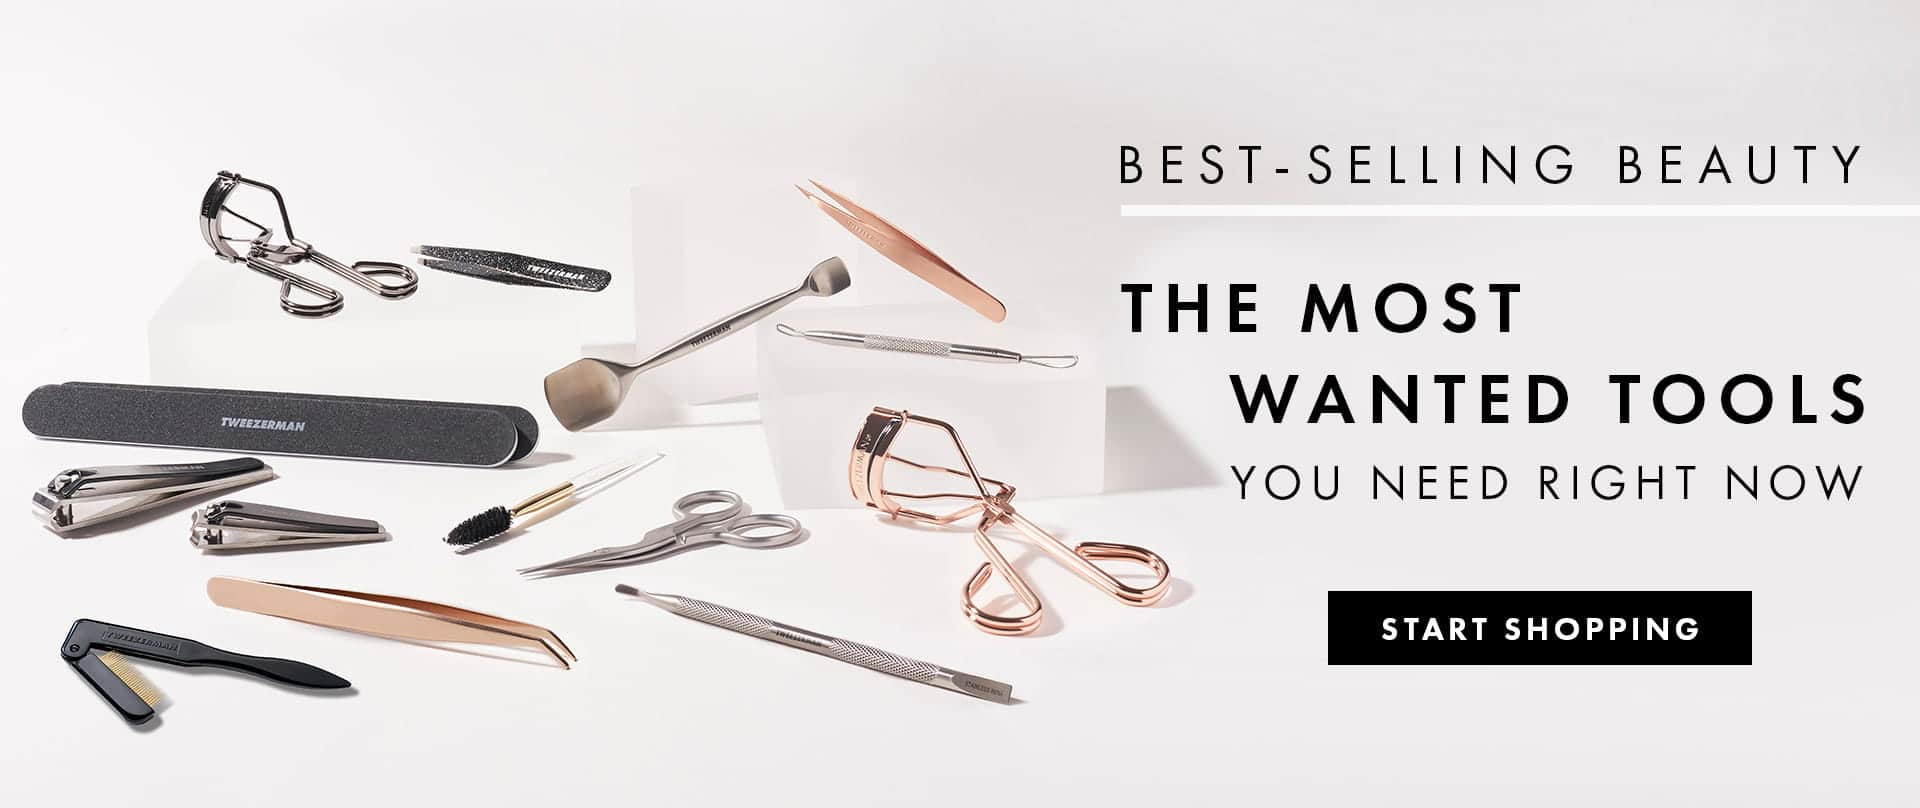 A collection of Tweezerman's best-selling beauty tools including the ProMaster Lash Curler, Rose Gold Slant Tweezer and Professional Nail Files.